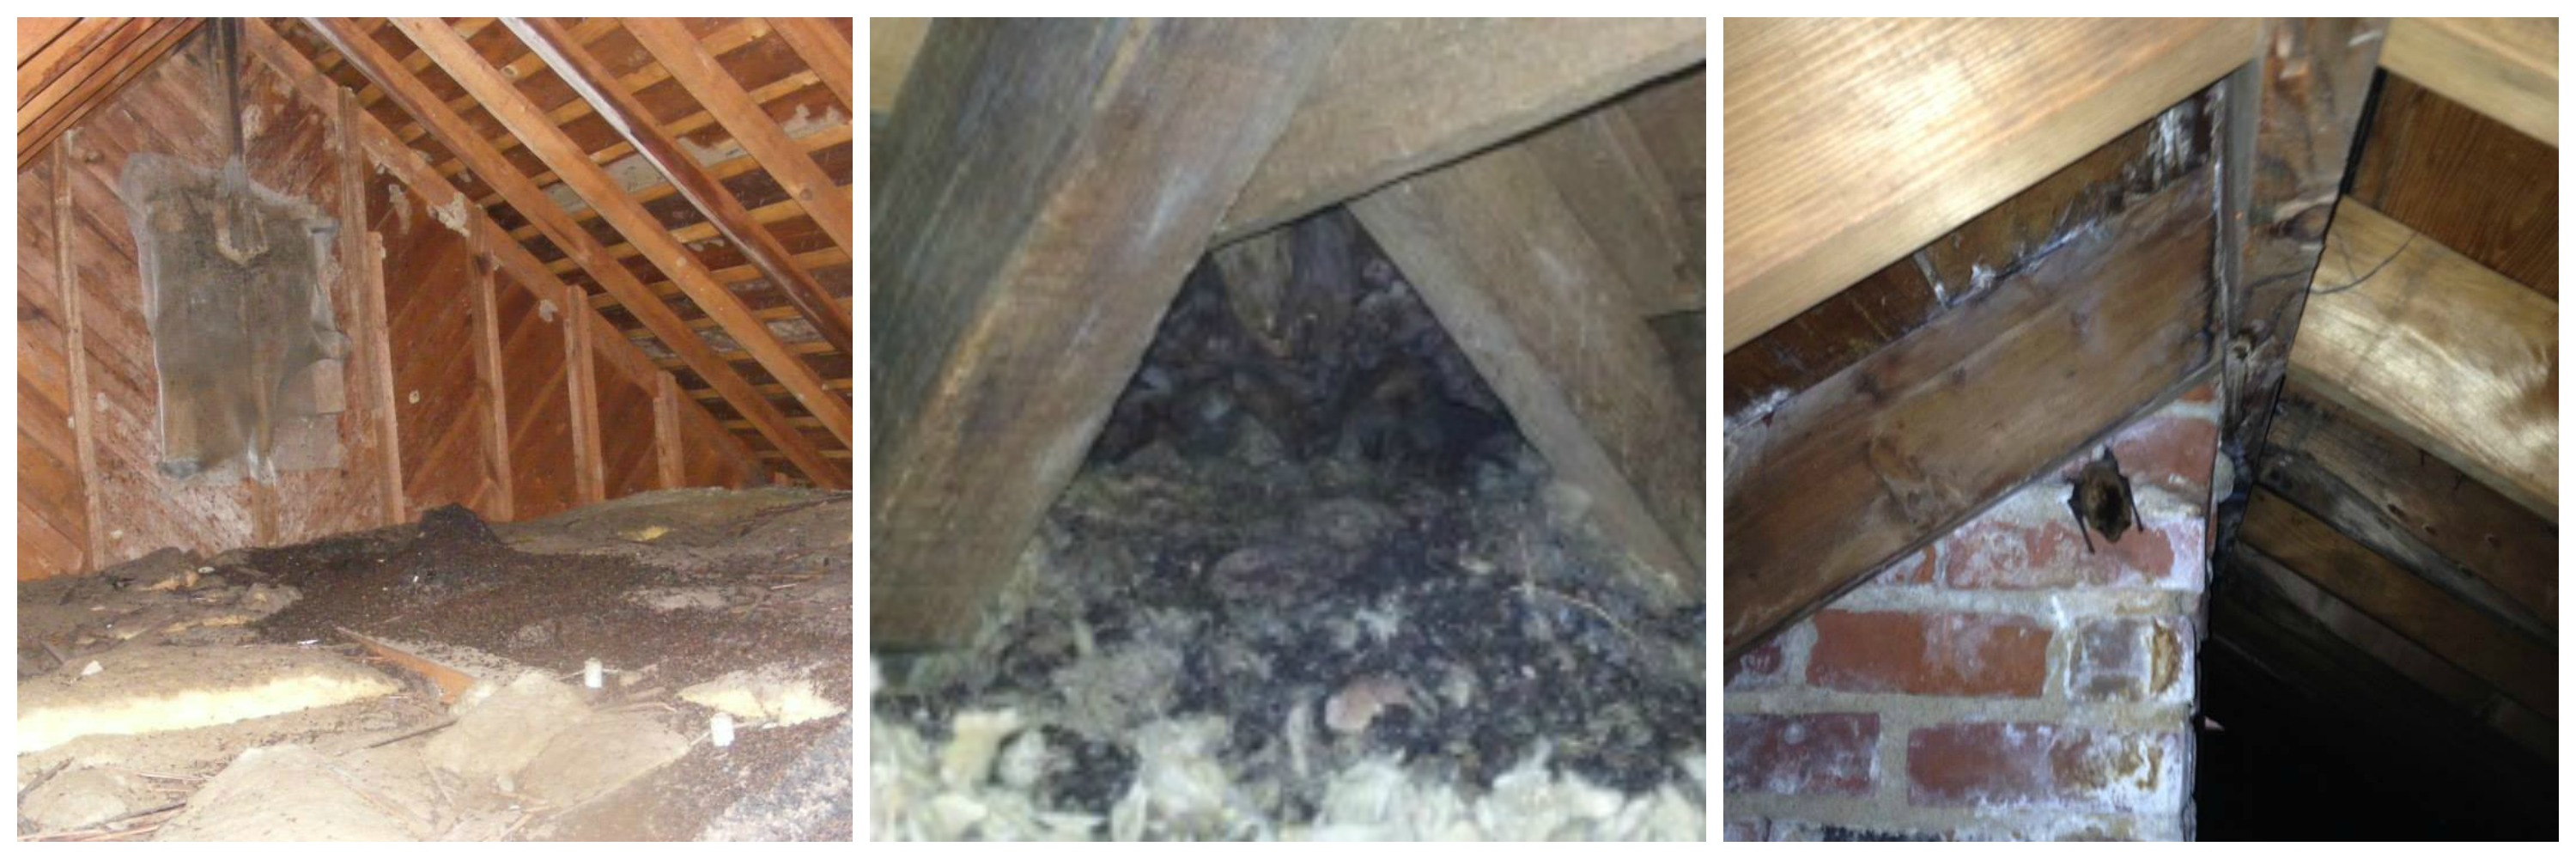 Photo: Attic Damage Images at Attic Remediation Animal Waste Removal Page.